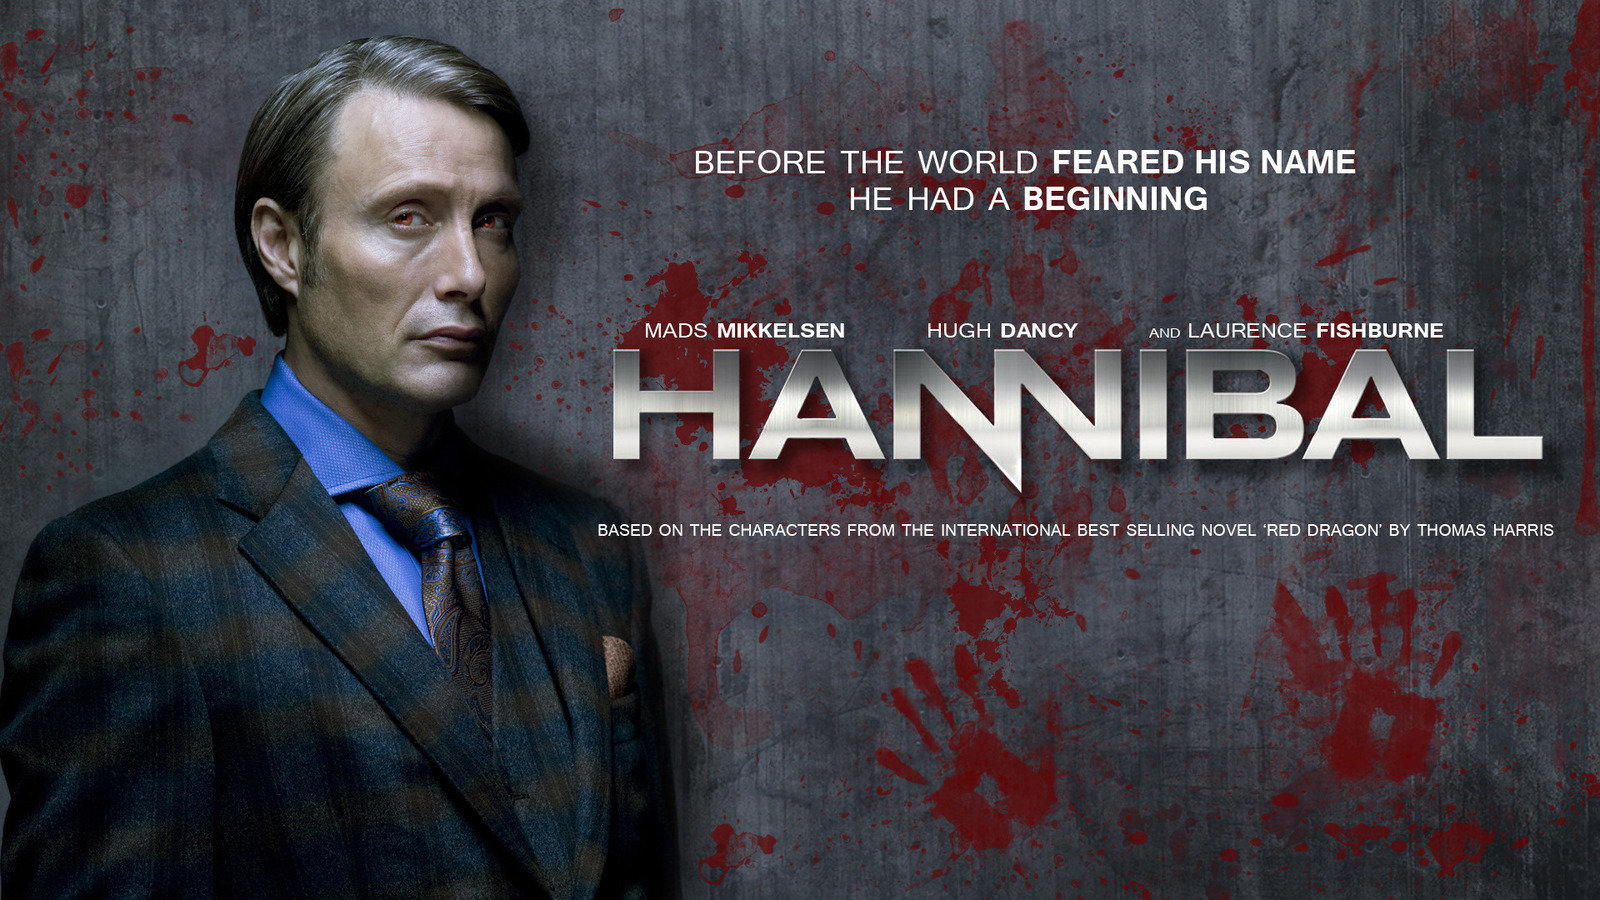 Petition Update Mads Mikkelsen Wants Hannibal Back On Television Changeorg